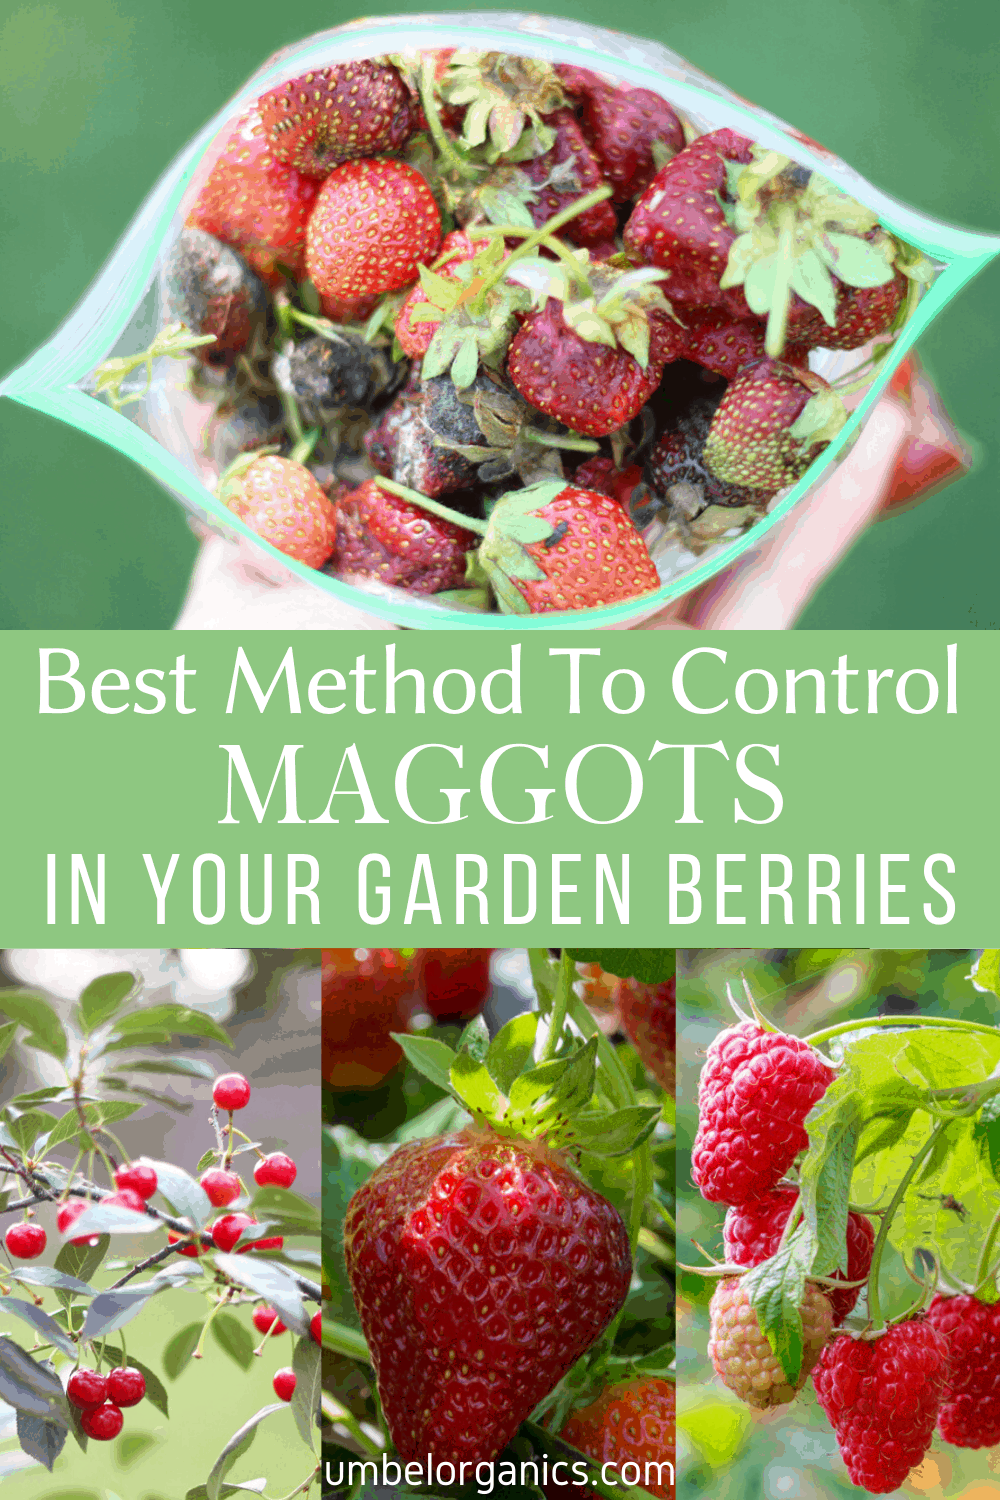 The best method to control fruit flies from ruining your garden berry crops